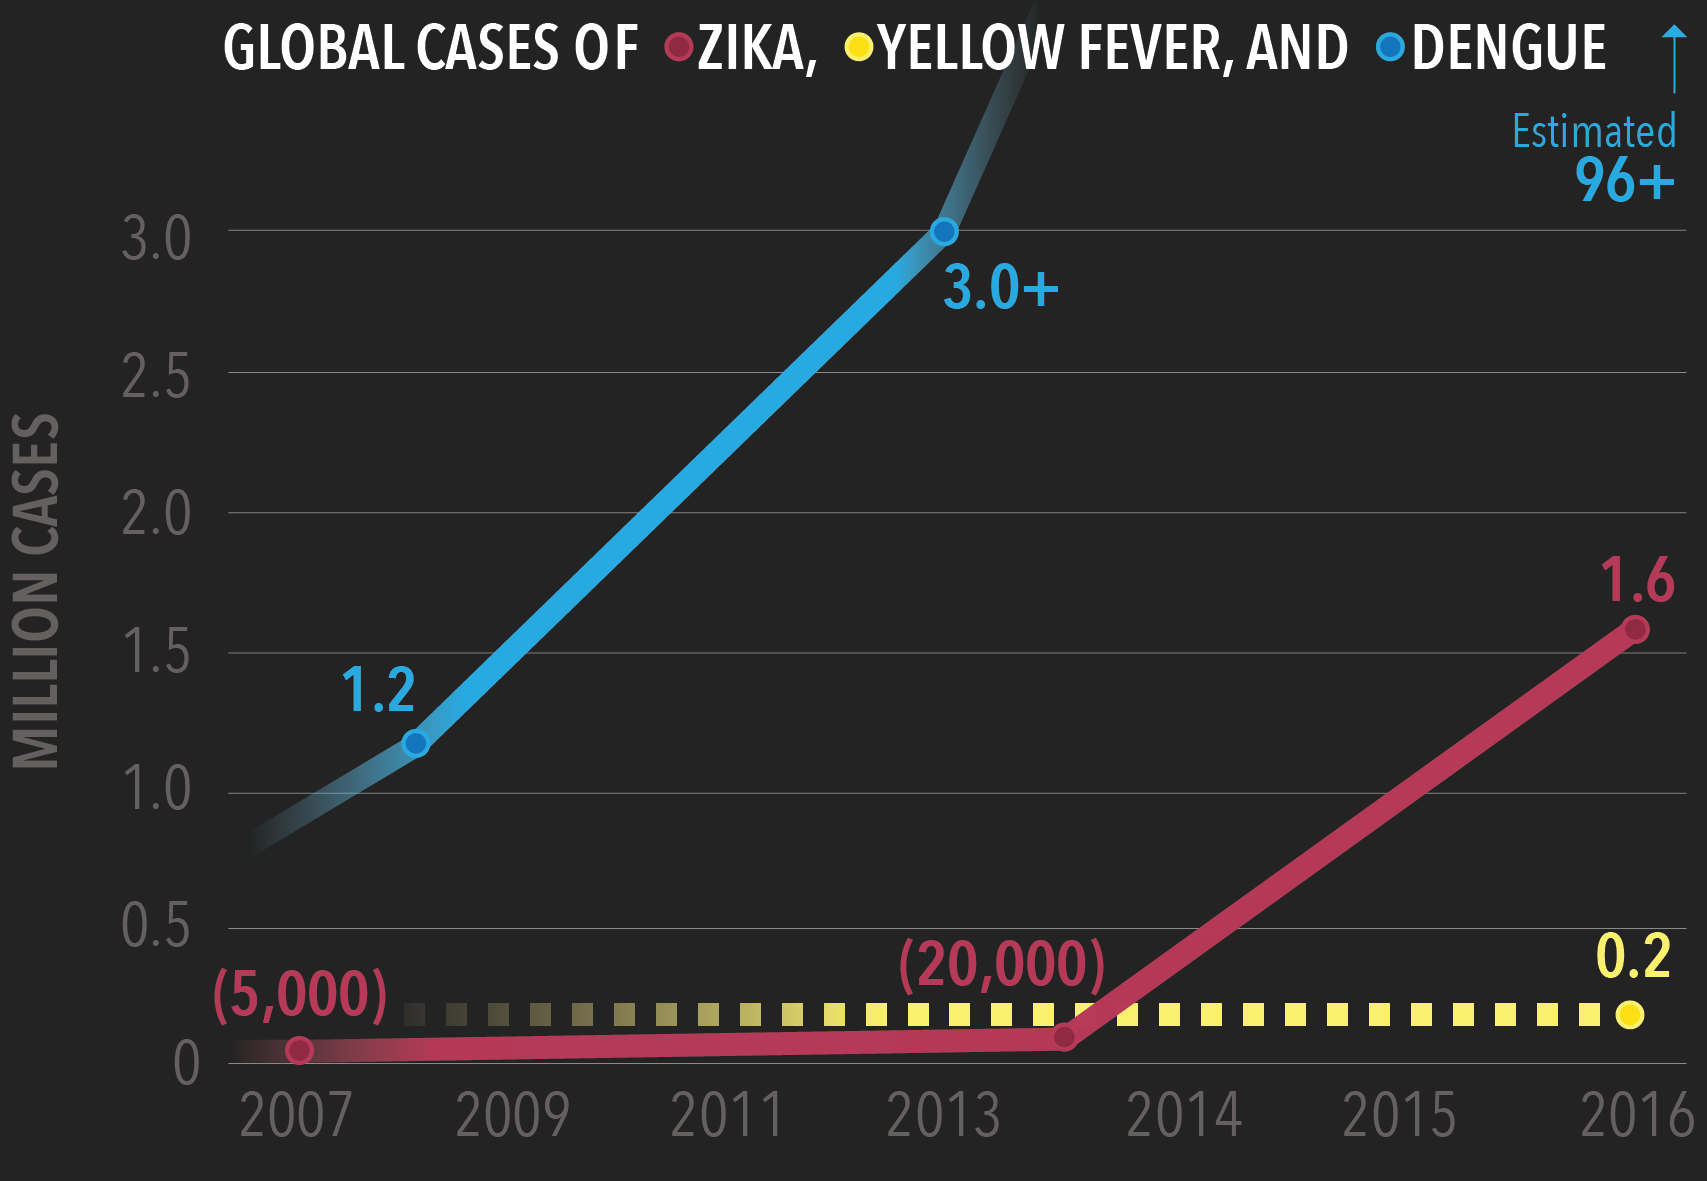 Prevalence of Zika, Yellow Fever, & Dengue Virus Cases. dengue at 1.2 million in 2008, 3+ million in 2013. zika at 5,000 in 2007, 20,000 in 2013, and 1.6 million in 2016. Yellow fever remains around 0.2 million from 2007-2016